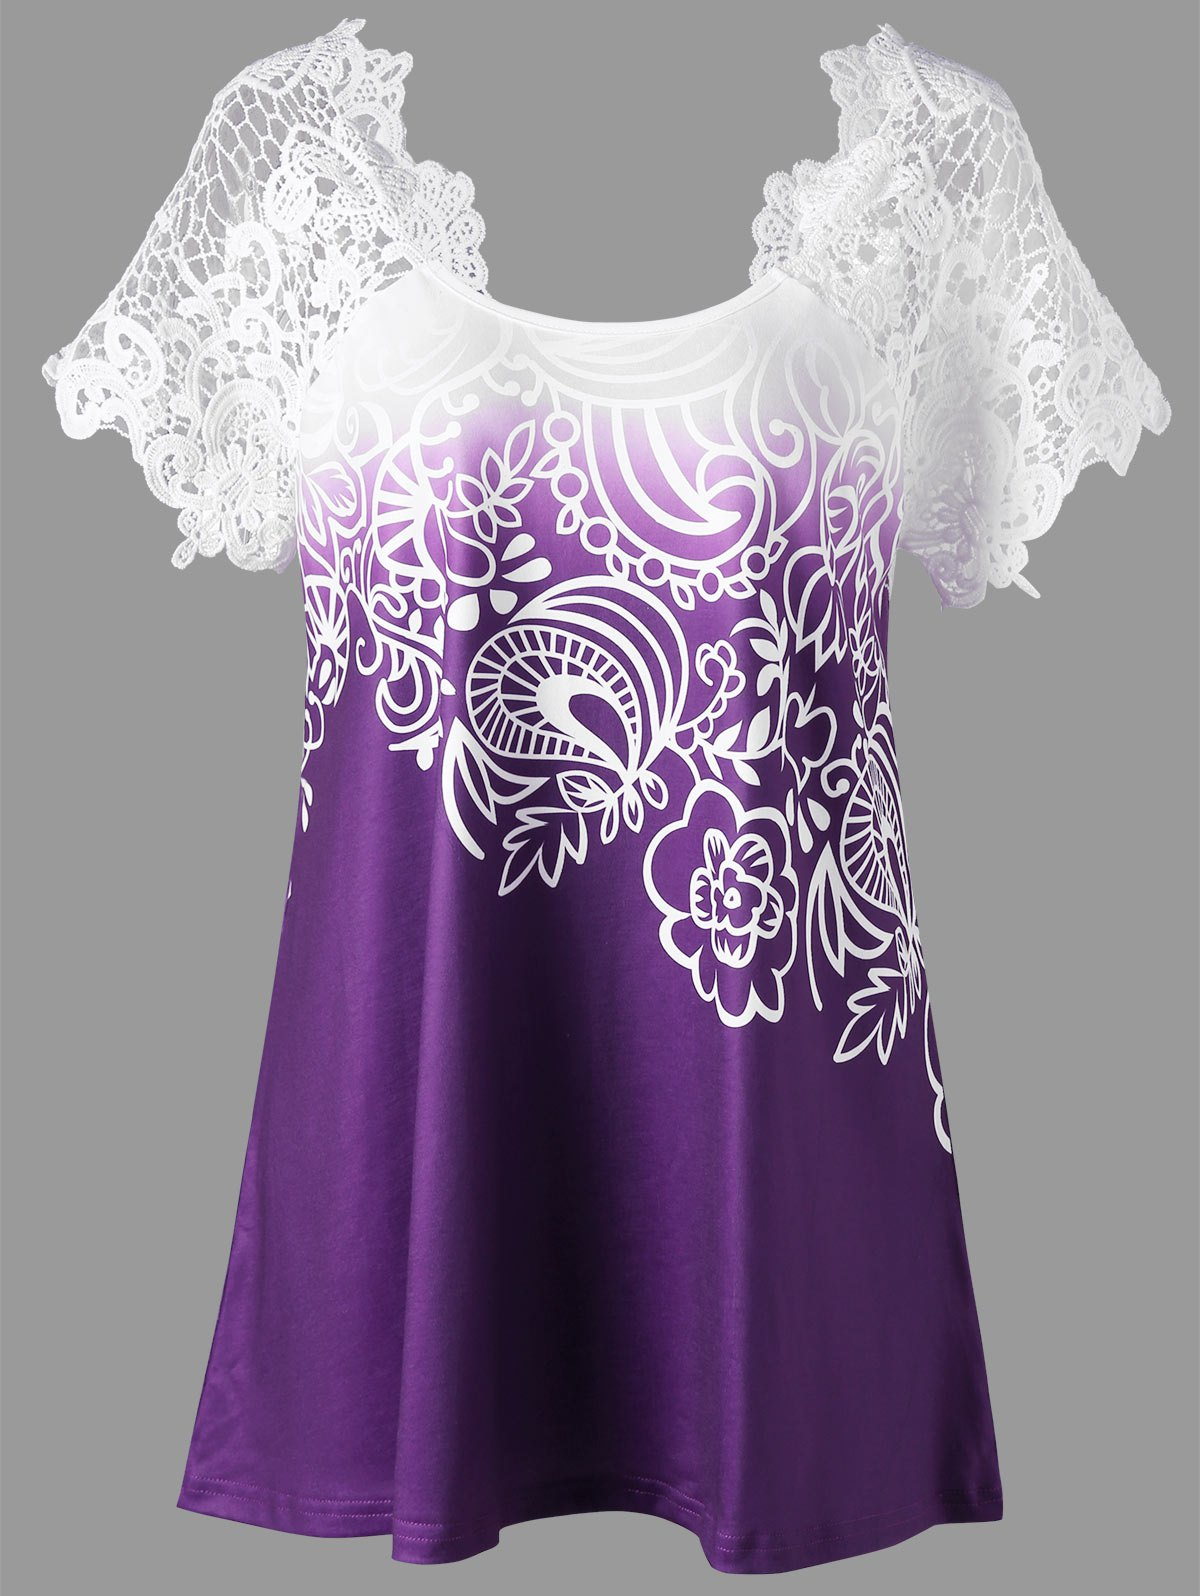 Lace Panel Raglan Sleeve Floral Plus Size TopWOMEN<br><br>Size: 2XL; Color: CONCORD; Material: Polyester,Spandex; Shirt Length: Regular; Sleeve Length: Short; Collar: Round Neck; Style: Fashion; Season: Fall,Spring,Summer; Embellishment: Lace; Pattern Type: Floral; Weight: 0.2300kg; Package Contents: 1 x Top;